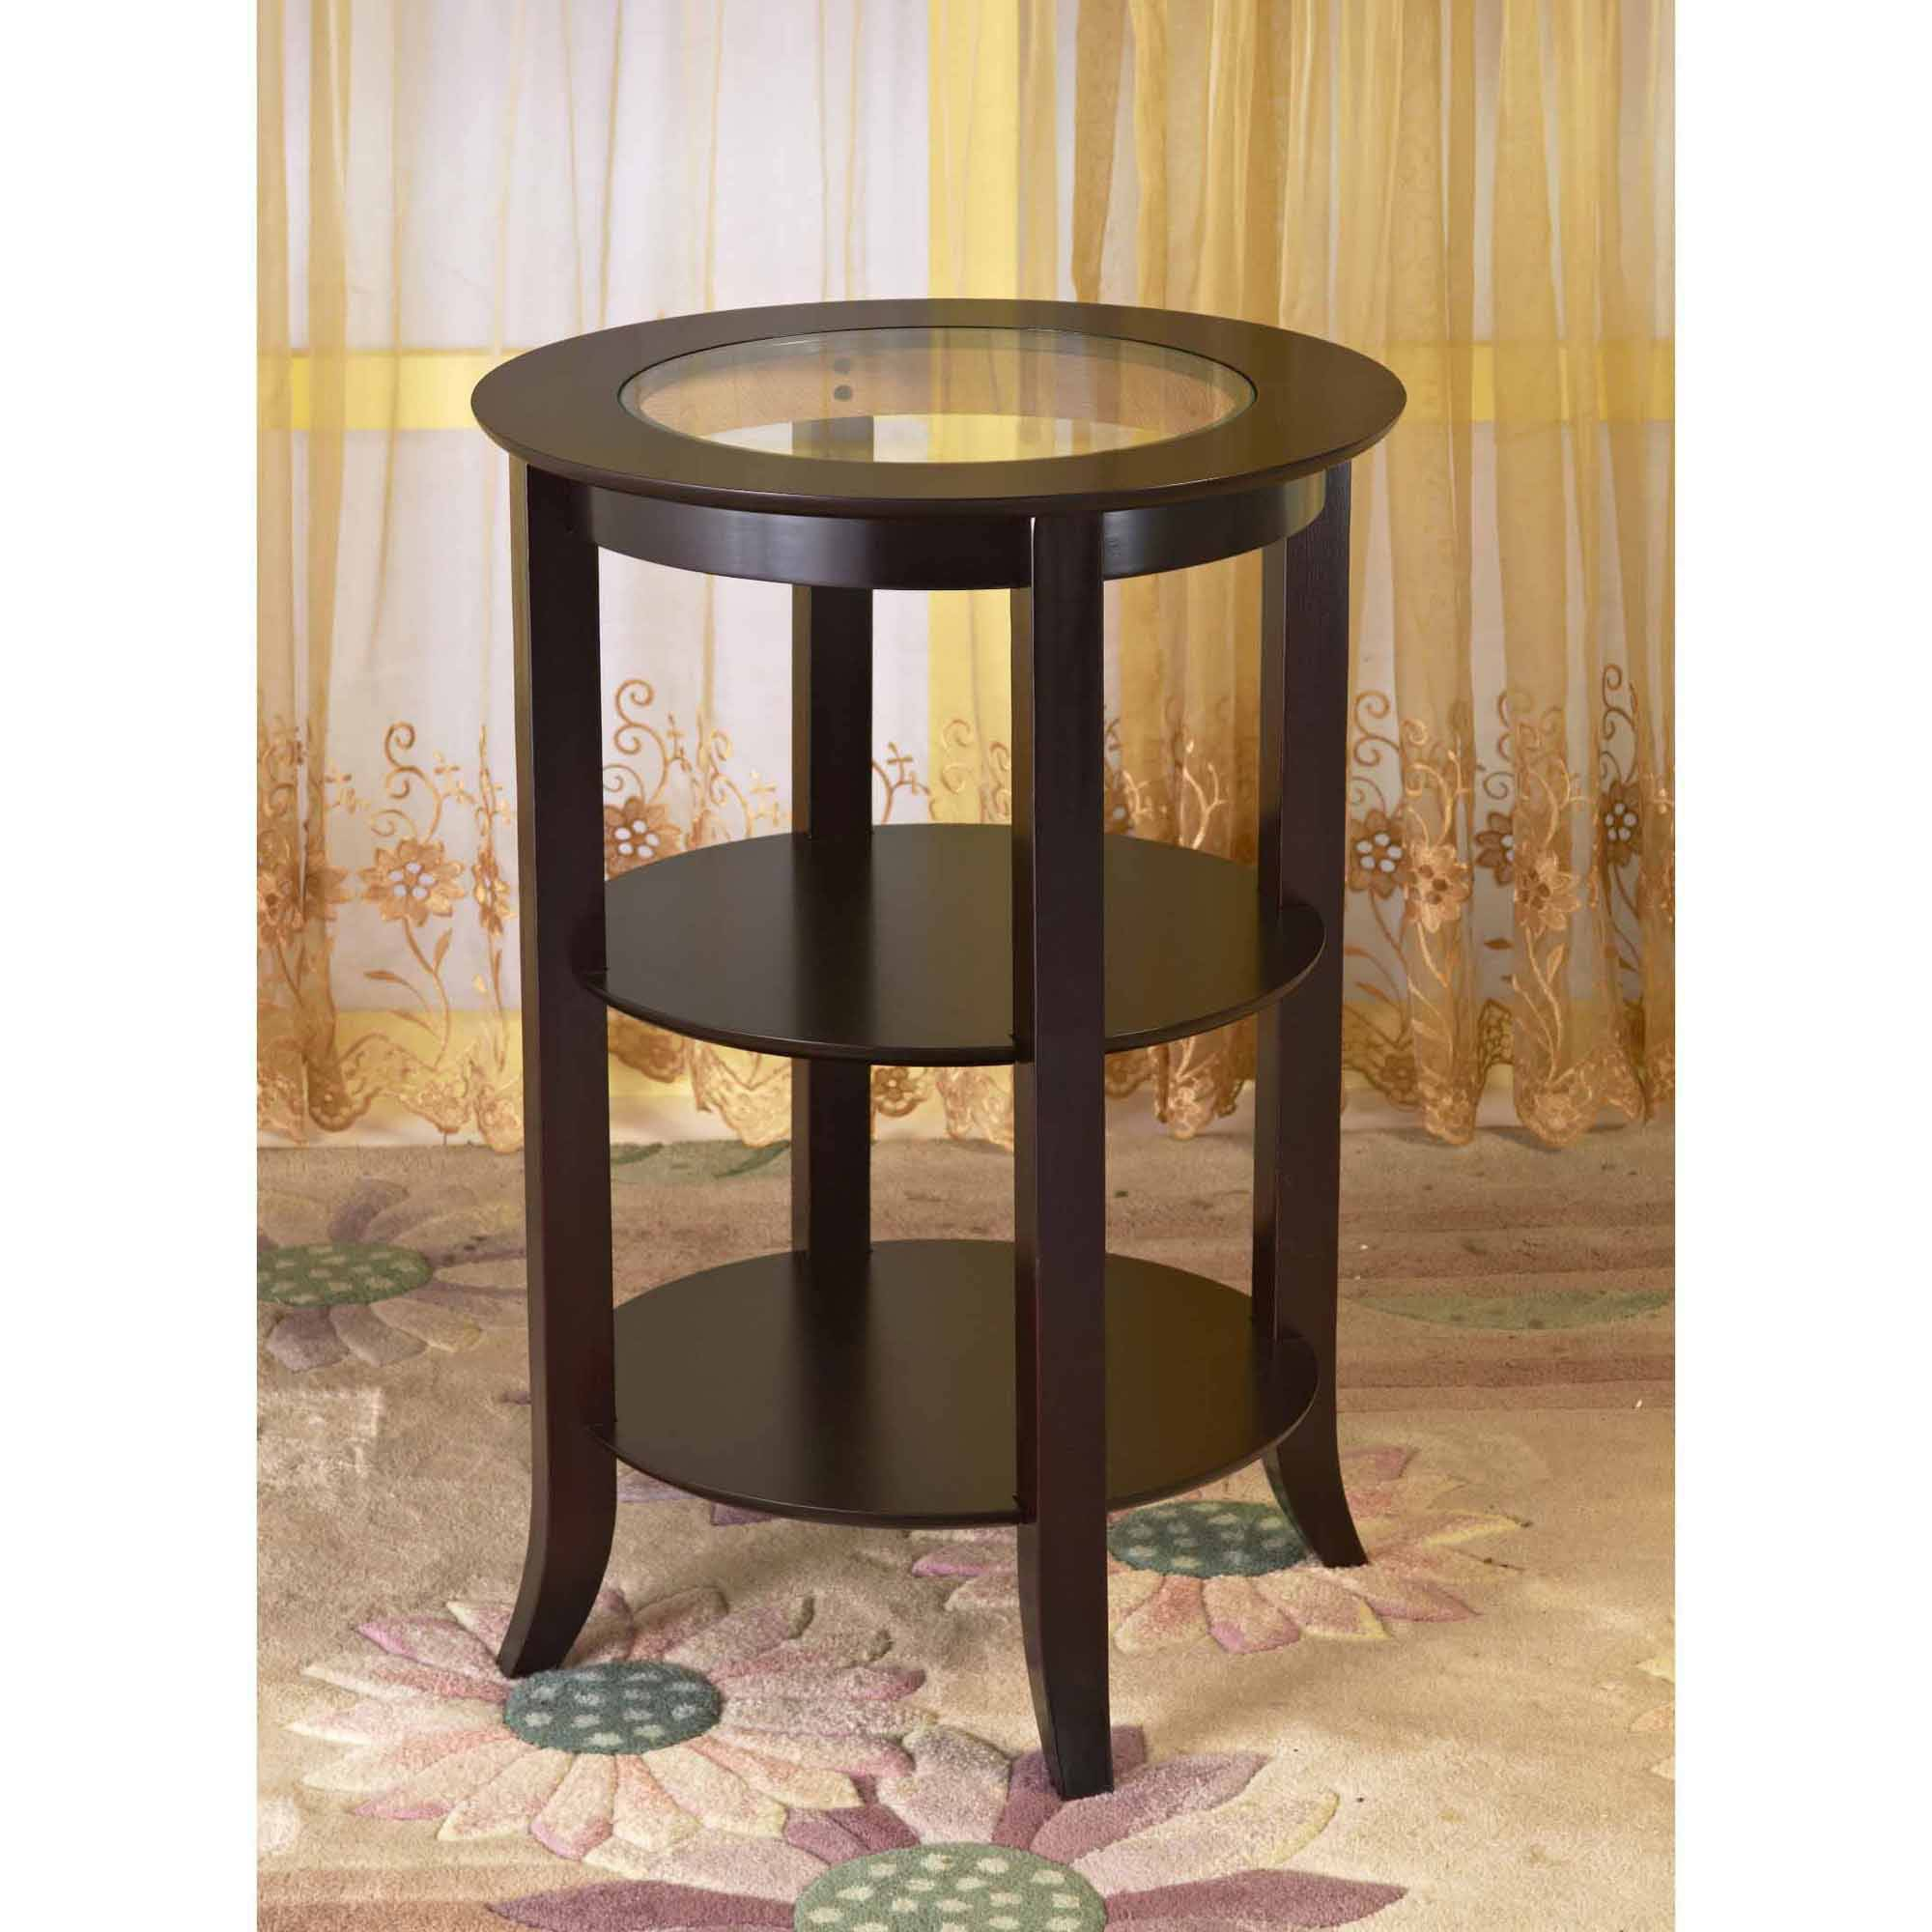 home craft wood round side accent table with shelves espresso sideaccent white console drawers farm leaf black leather chair wedding list ideas cube tables ikea half moon antique